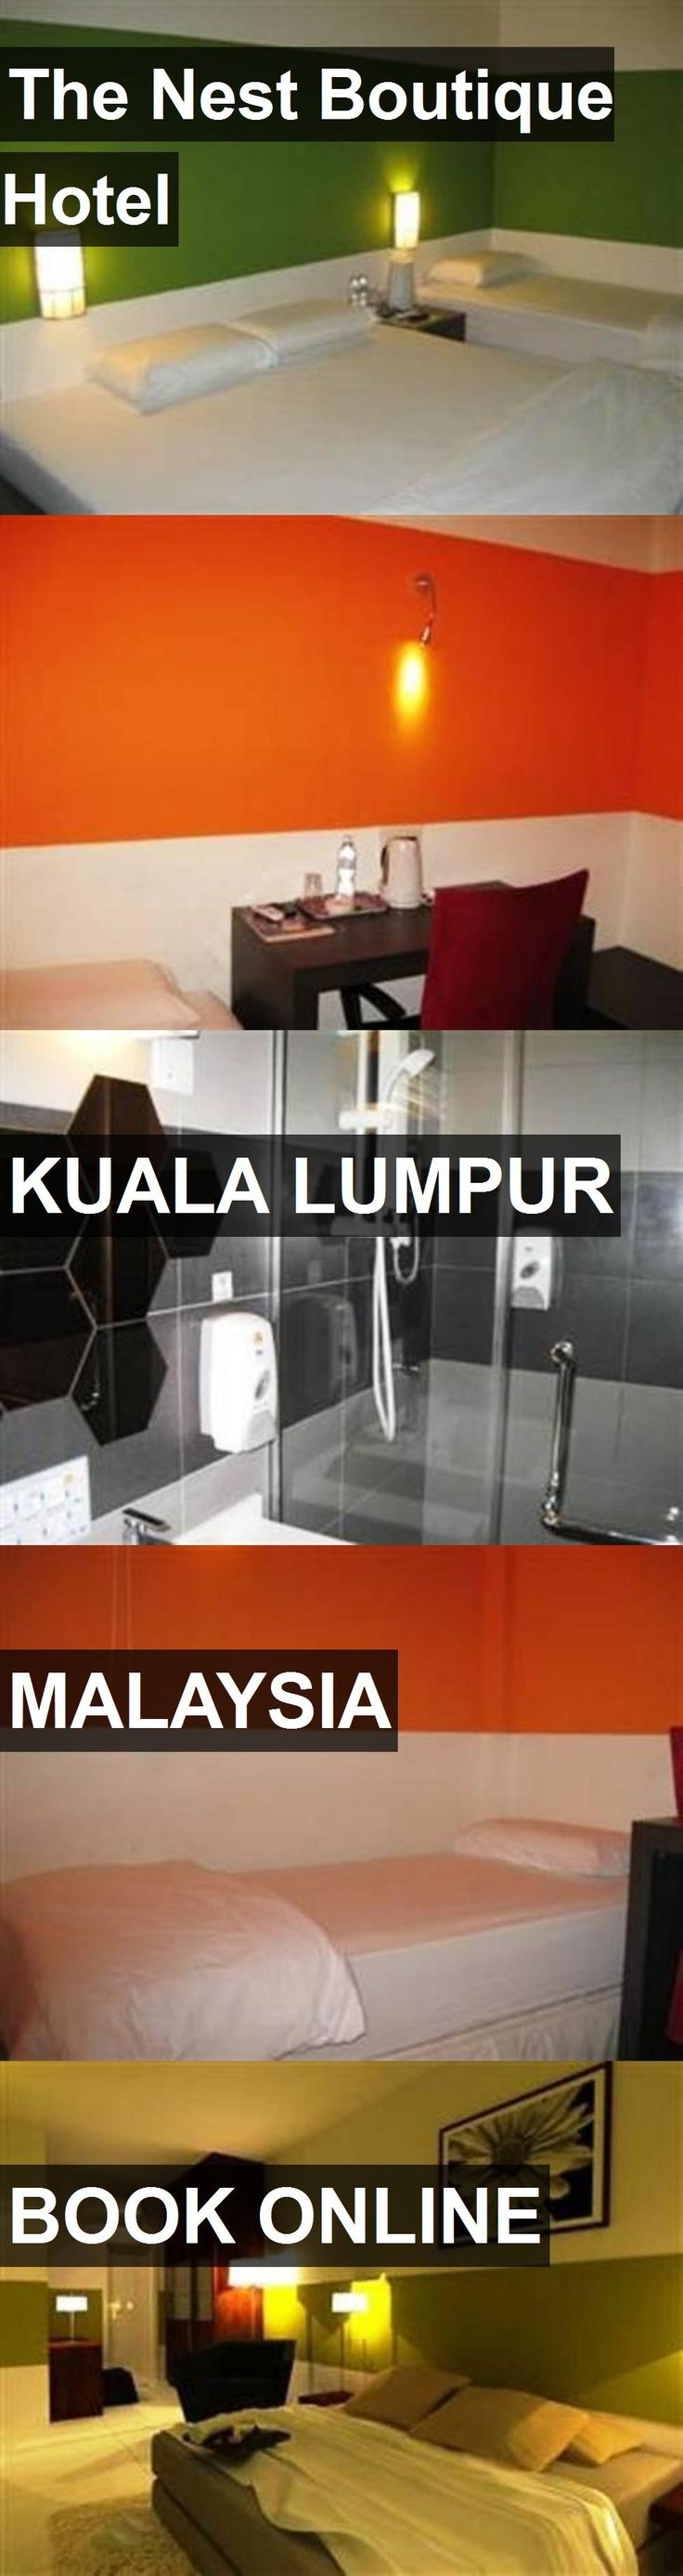 The Nest Boutique Hotel in Kuala Lumpur, Malaysia. For more information, photos, reviews and best prices please follow the link. #Malaysia #KualaLumpur #travel #vacation #hotel